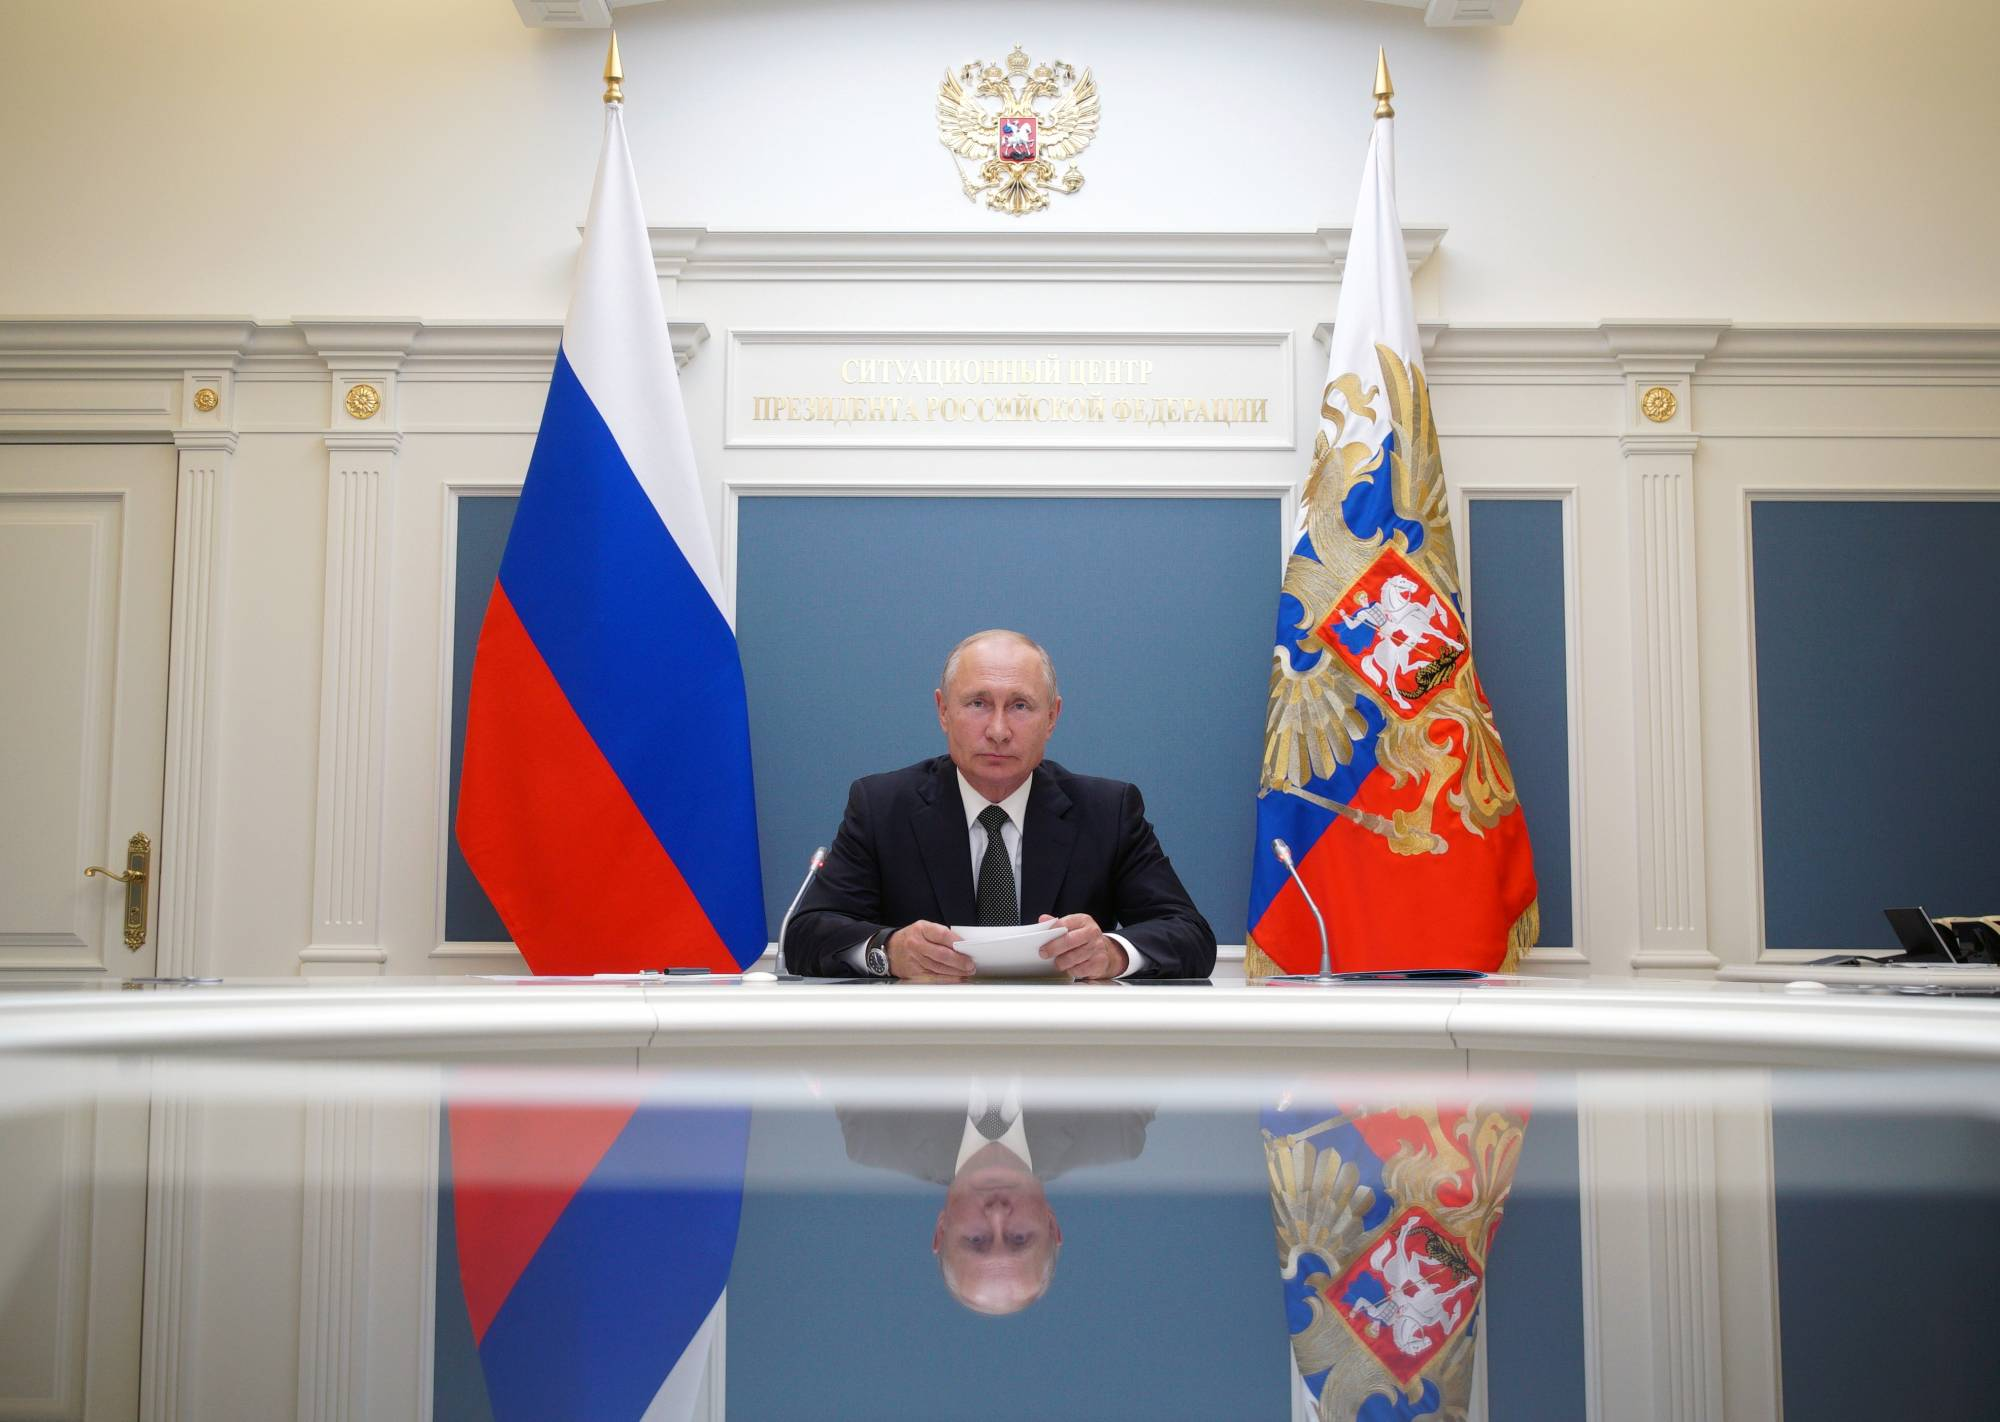 Russian President Vladimir Putin takes part in a video conference call on Tuesday.  | KREMLIN / VIA REUTERS